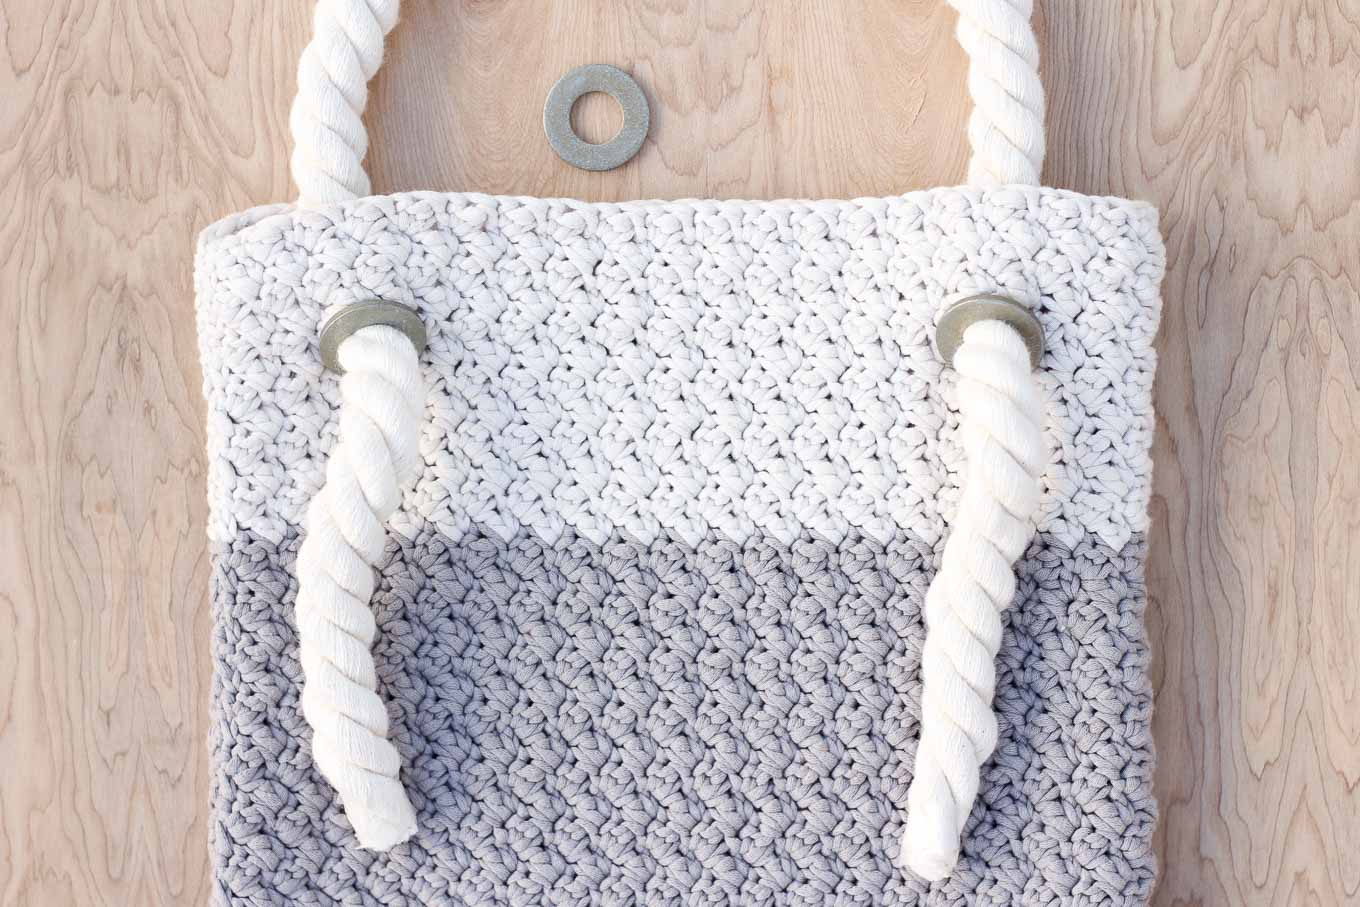 Tote Bag Patterns and Ideas that You Will Adore Free Crochet Bag Pattern Beginners 14 Make Do Crew